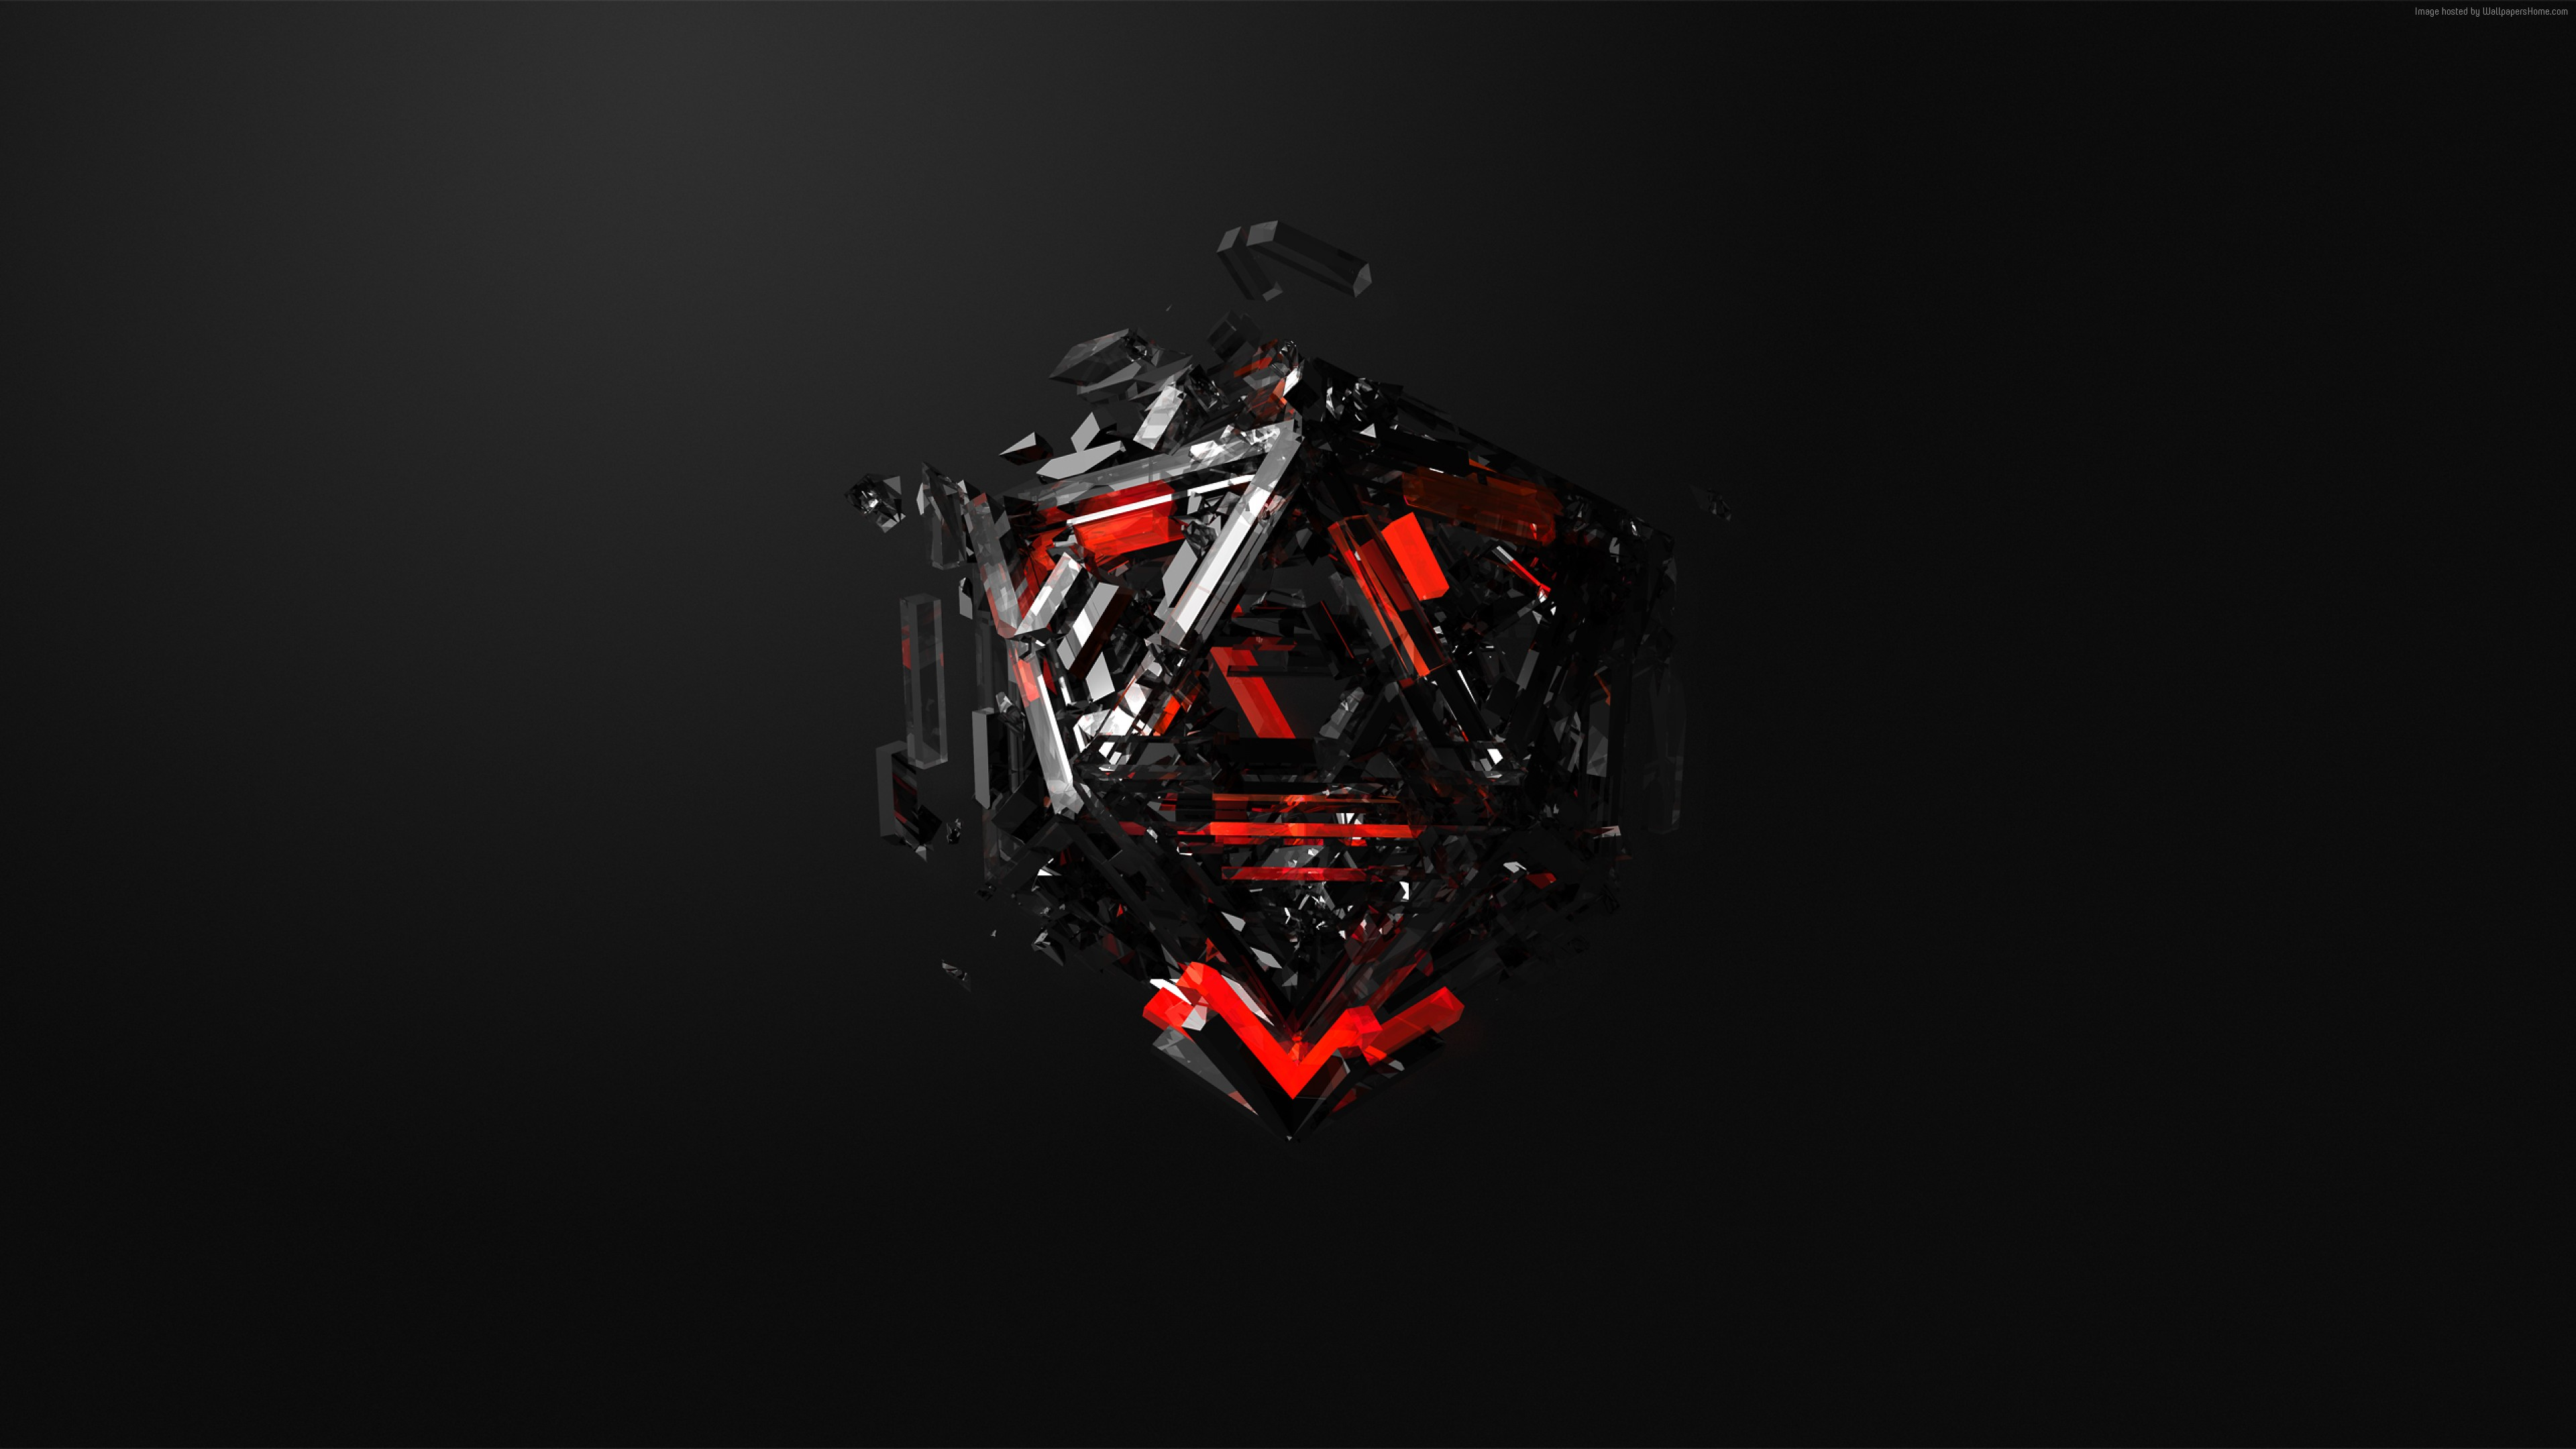 Wallpaper triangles, 3D, red, black, HD, Abstract 8381118657 - Wallpaper triangles, 3D, red, black, HD, Abstract - Triangles, red, HD, Black, 3D